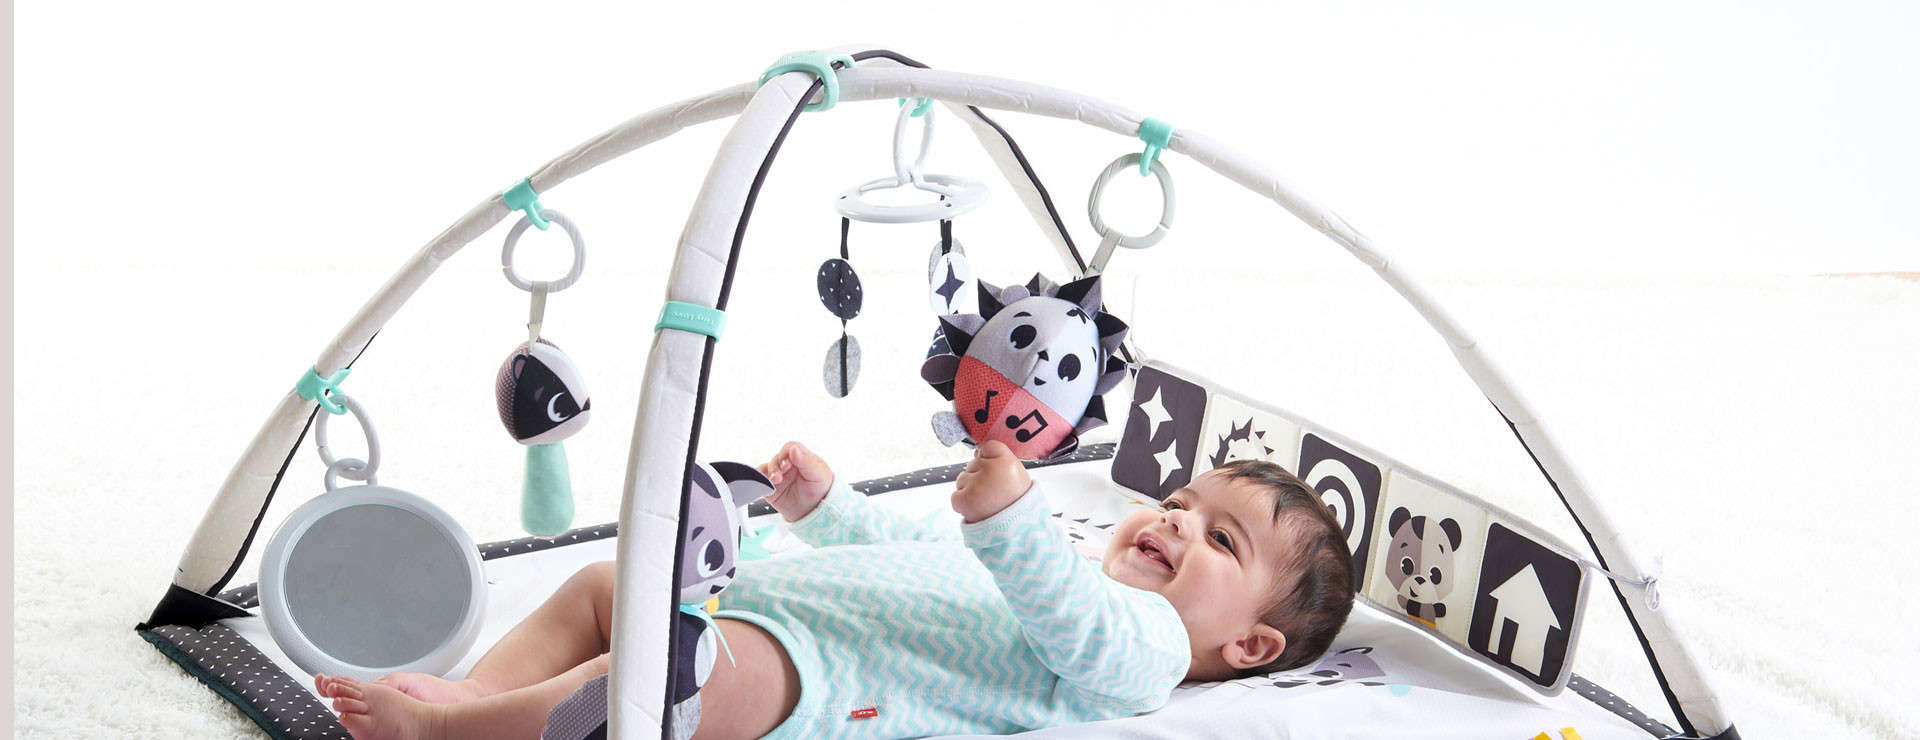 Easily change position of toys with sliding rings to moderate stimulation